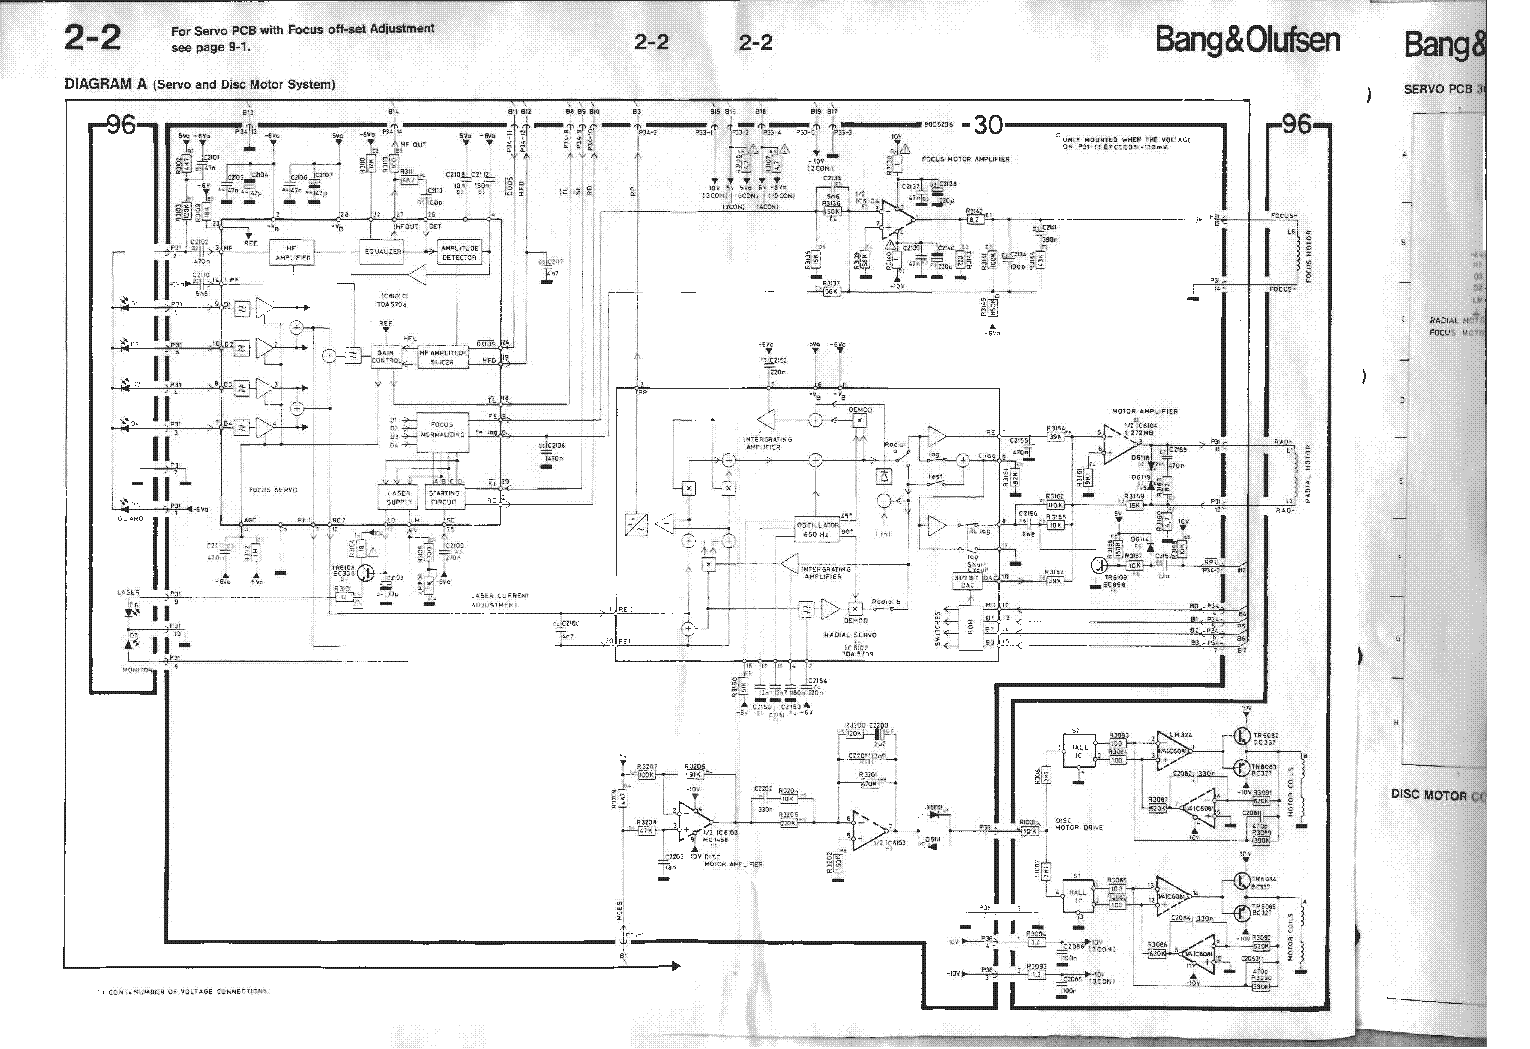 Cadillac escalade police vehicle additionally Wiring diagrams also Bo Schematics The Wiring Diagram likewise Tesla Electric Car Wiring Diagram together with RepairGuideContent. on free ford wiring diagrams online